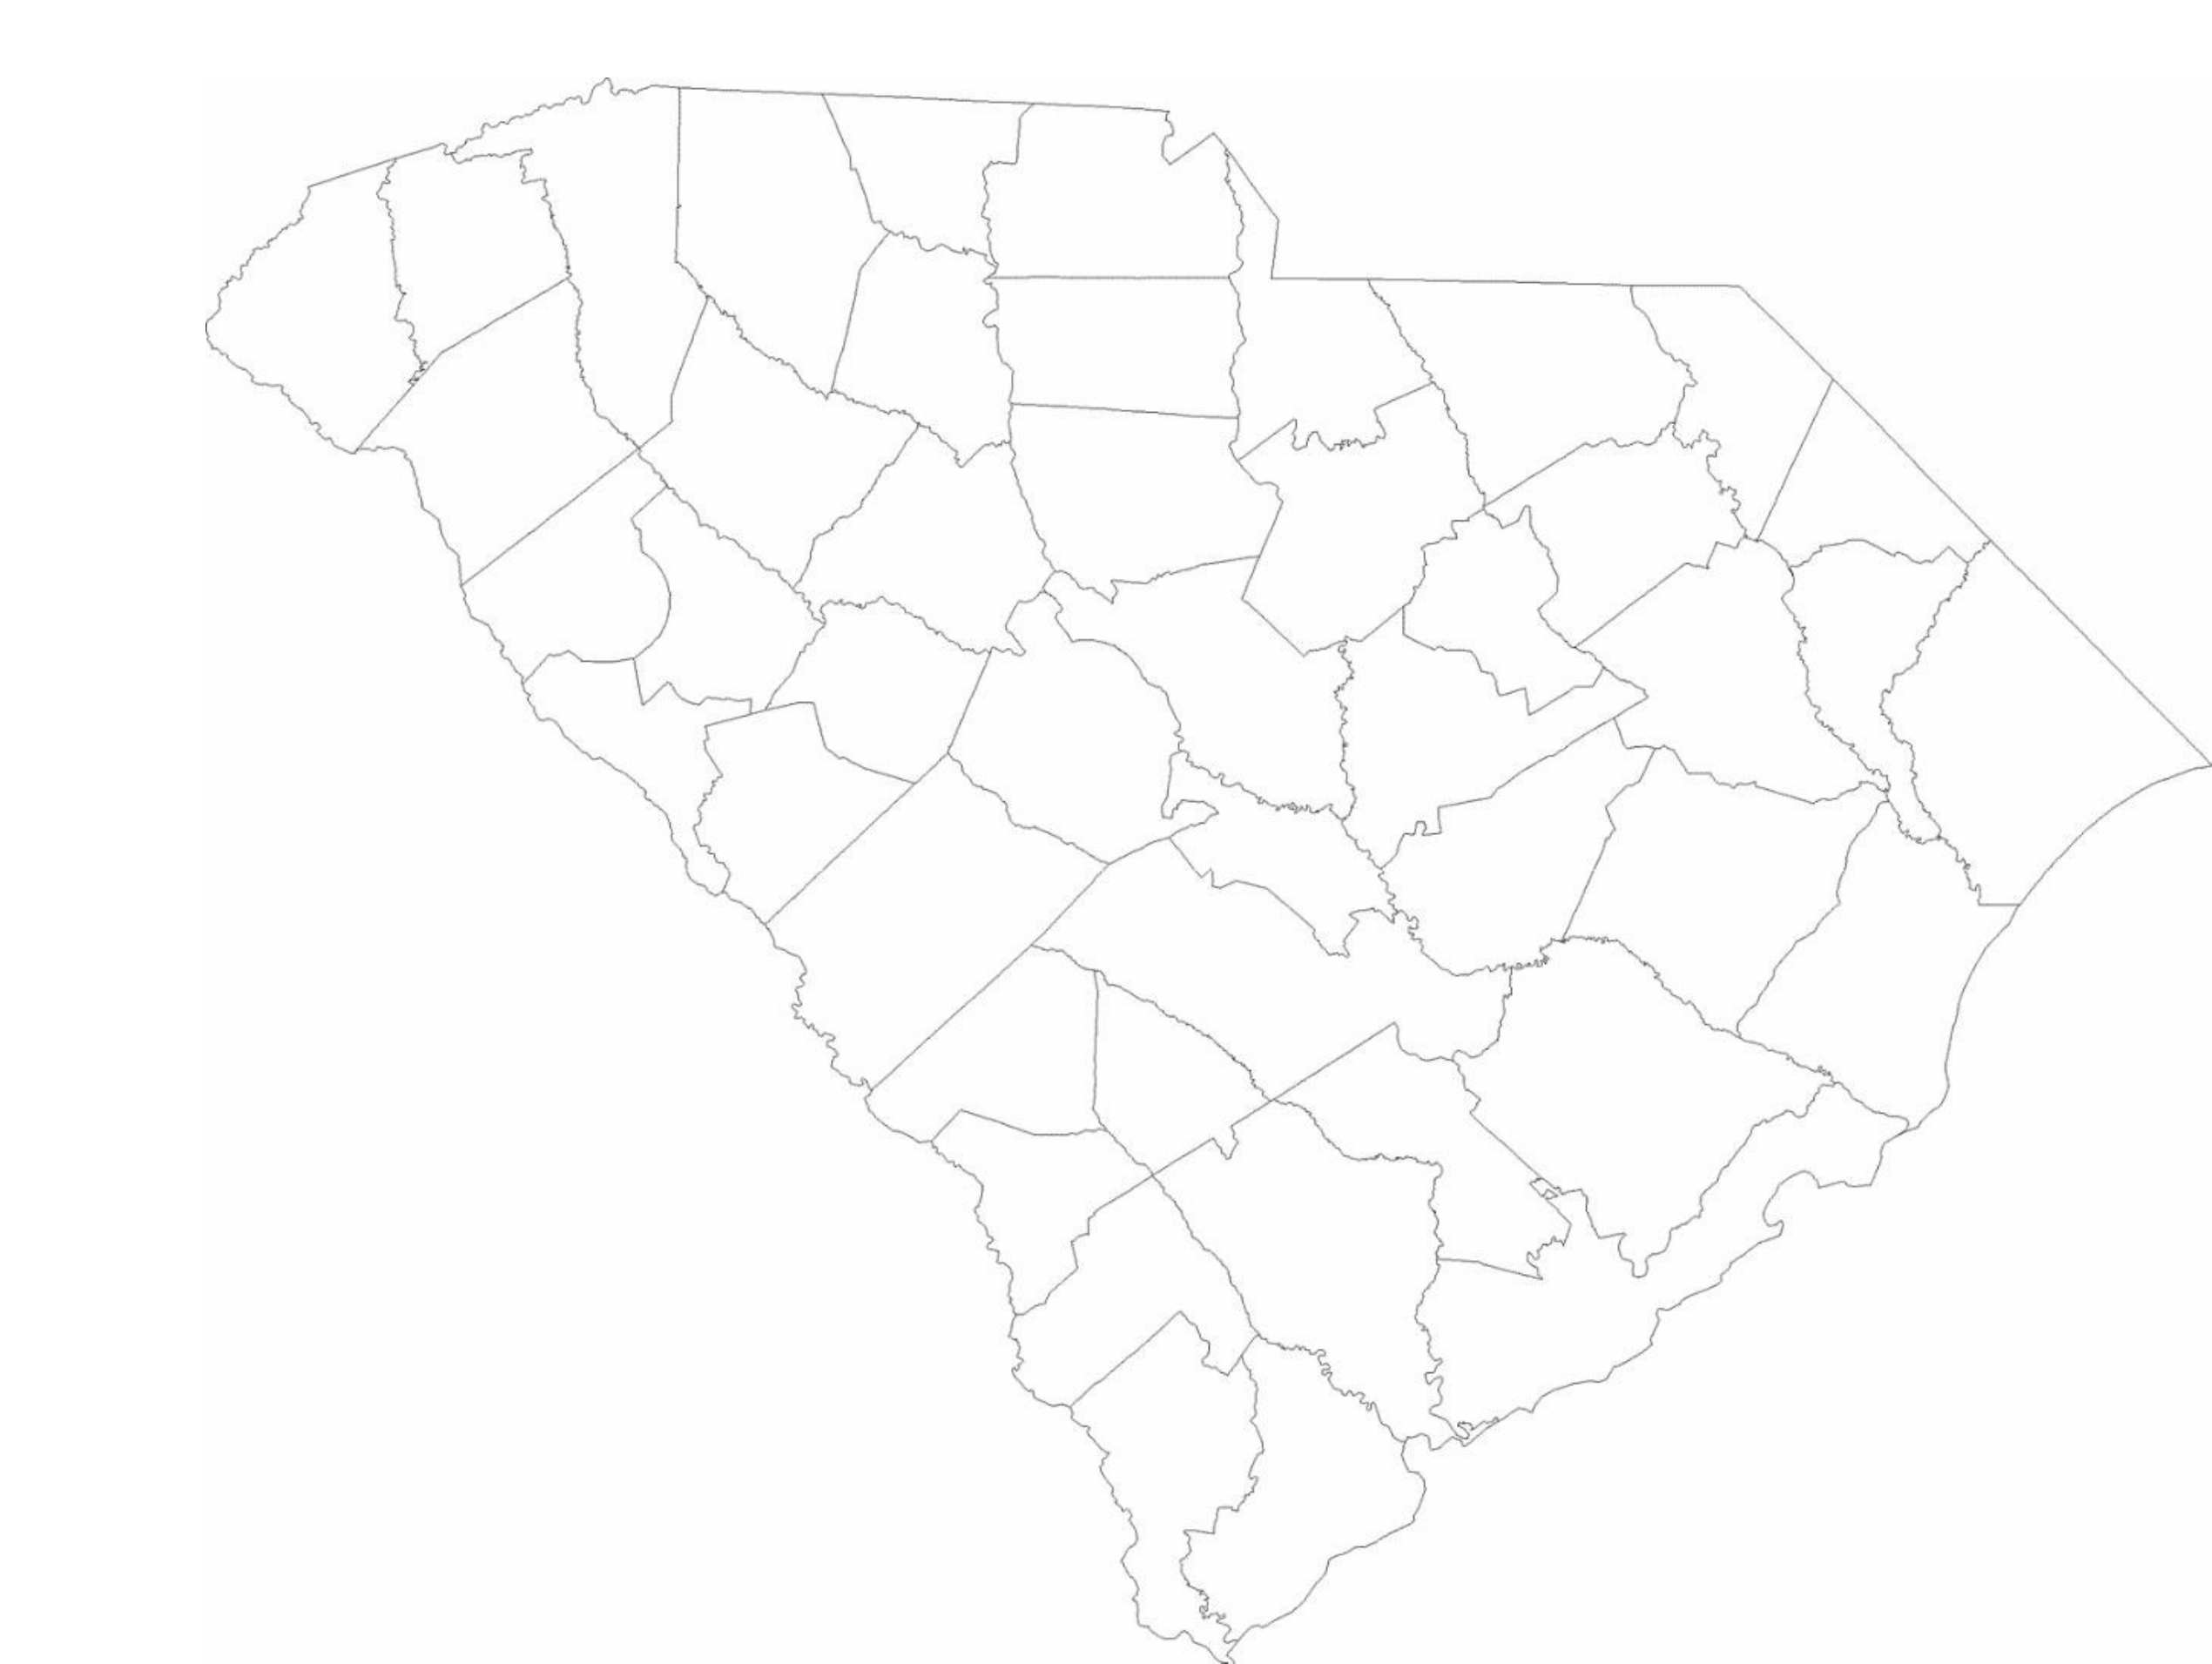 Blank South Carolina County Map Free Download on sc colony map, south carolina road map, sc legislature map, sc precinct map, upstate sc zip code map, sc cities map, sc zone map, lexington sc map, hemingway sc map, sc national forest map, clemson sc on map, sc florida map, ridgeville sc map, sc water map, sc map with counties, sc rivers map, pickens sc map, camden sc map, sc city map, sc state map,